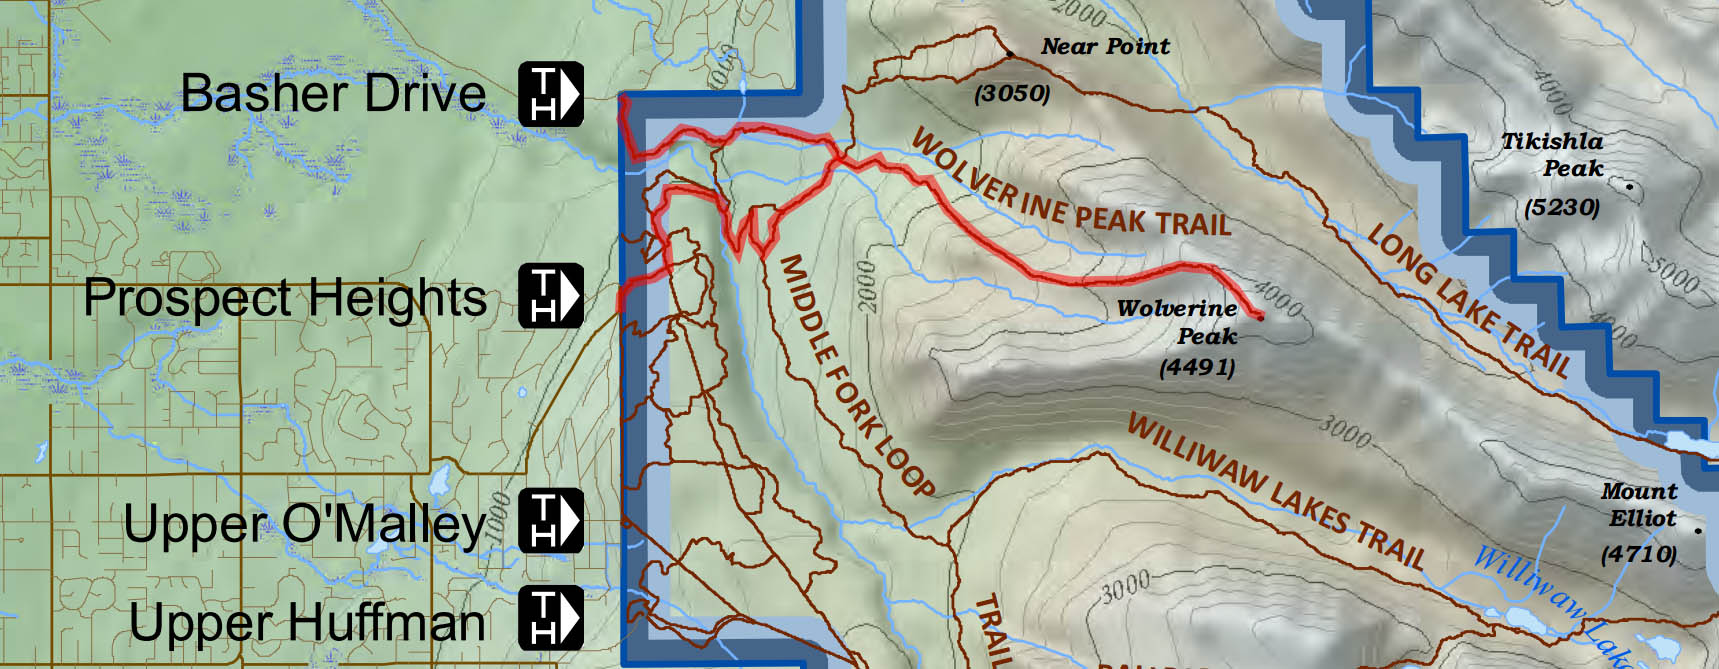 Hiking map for Wolverine Peak